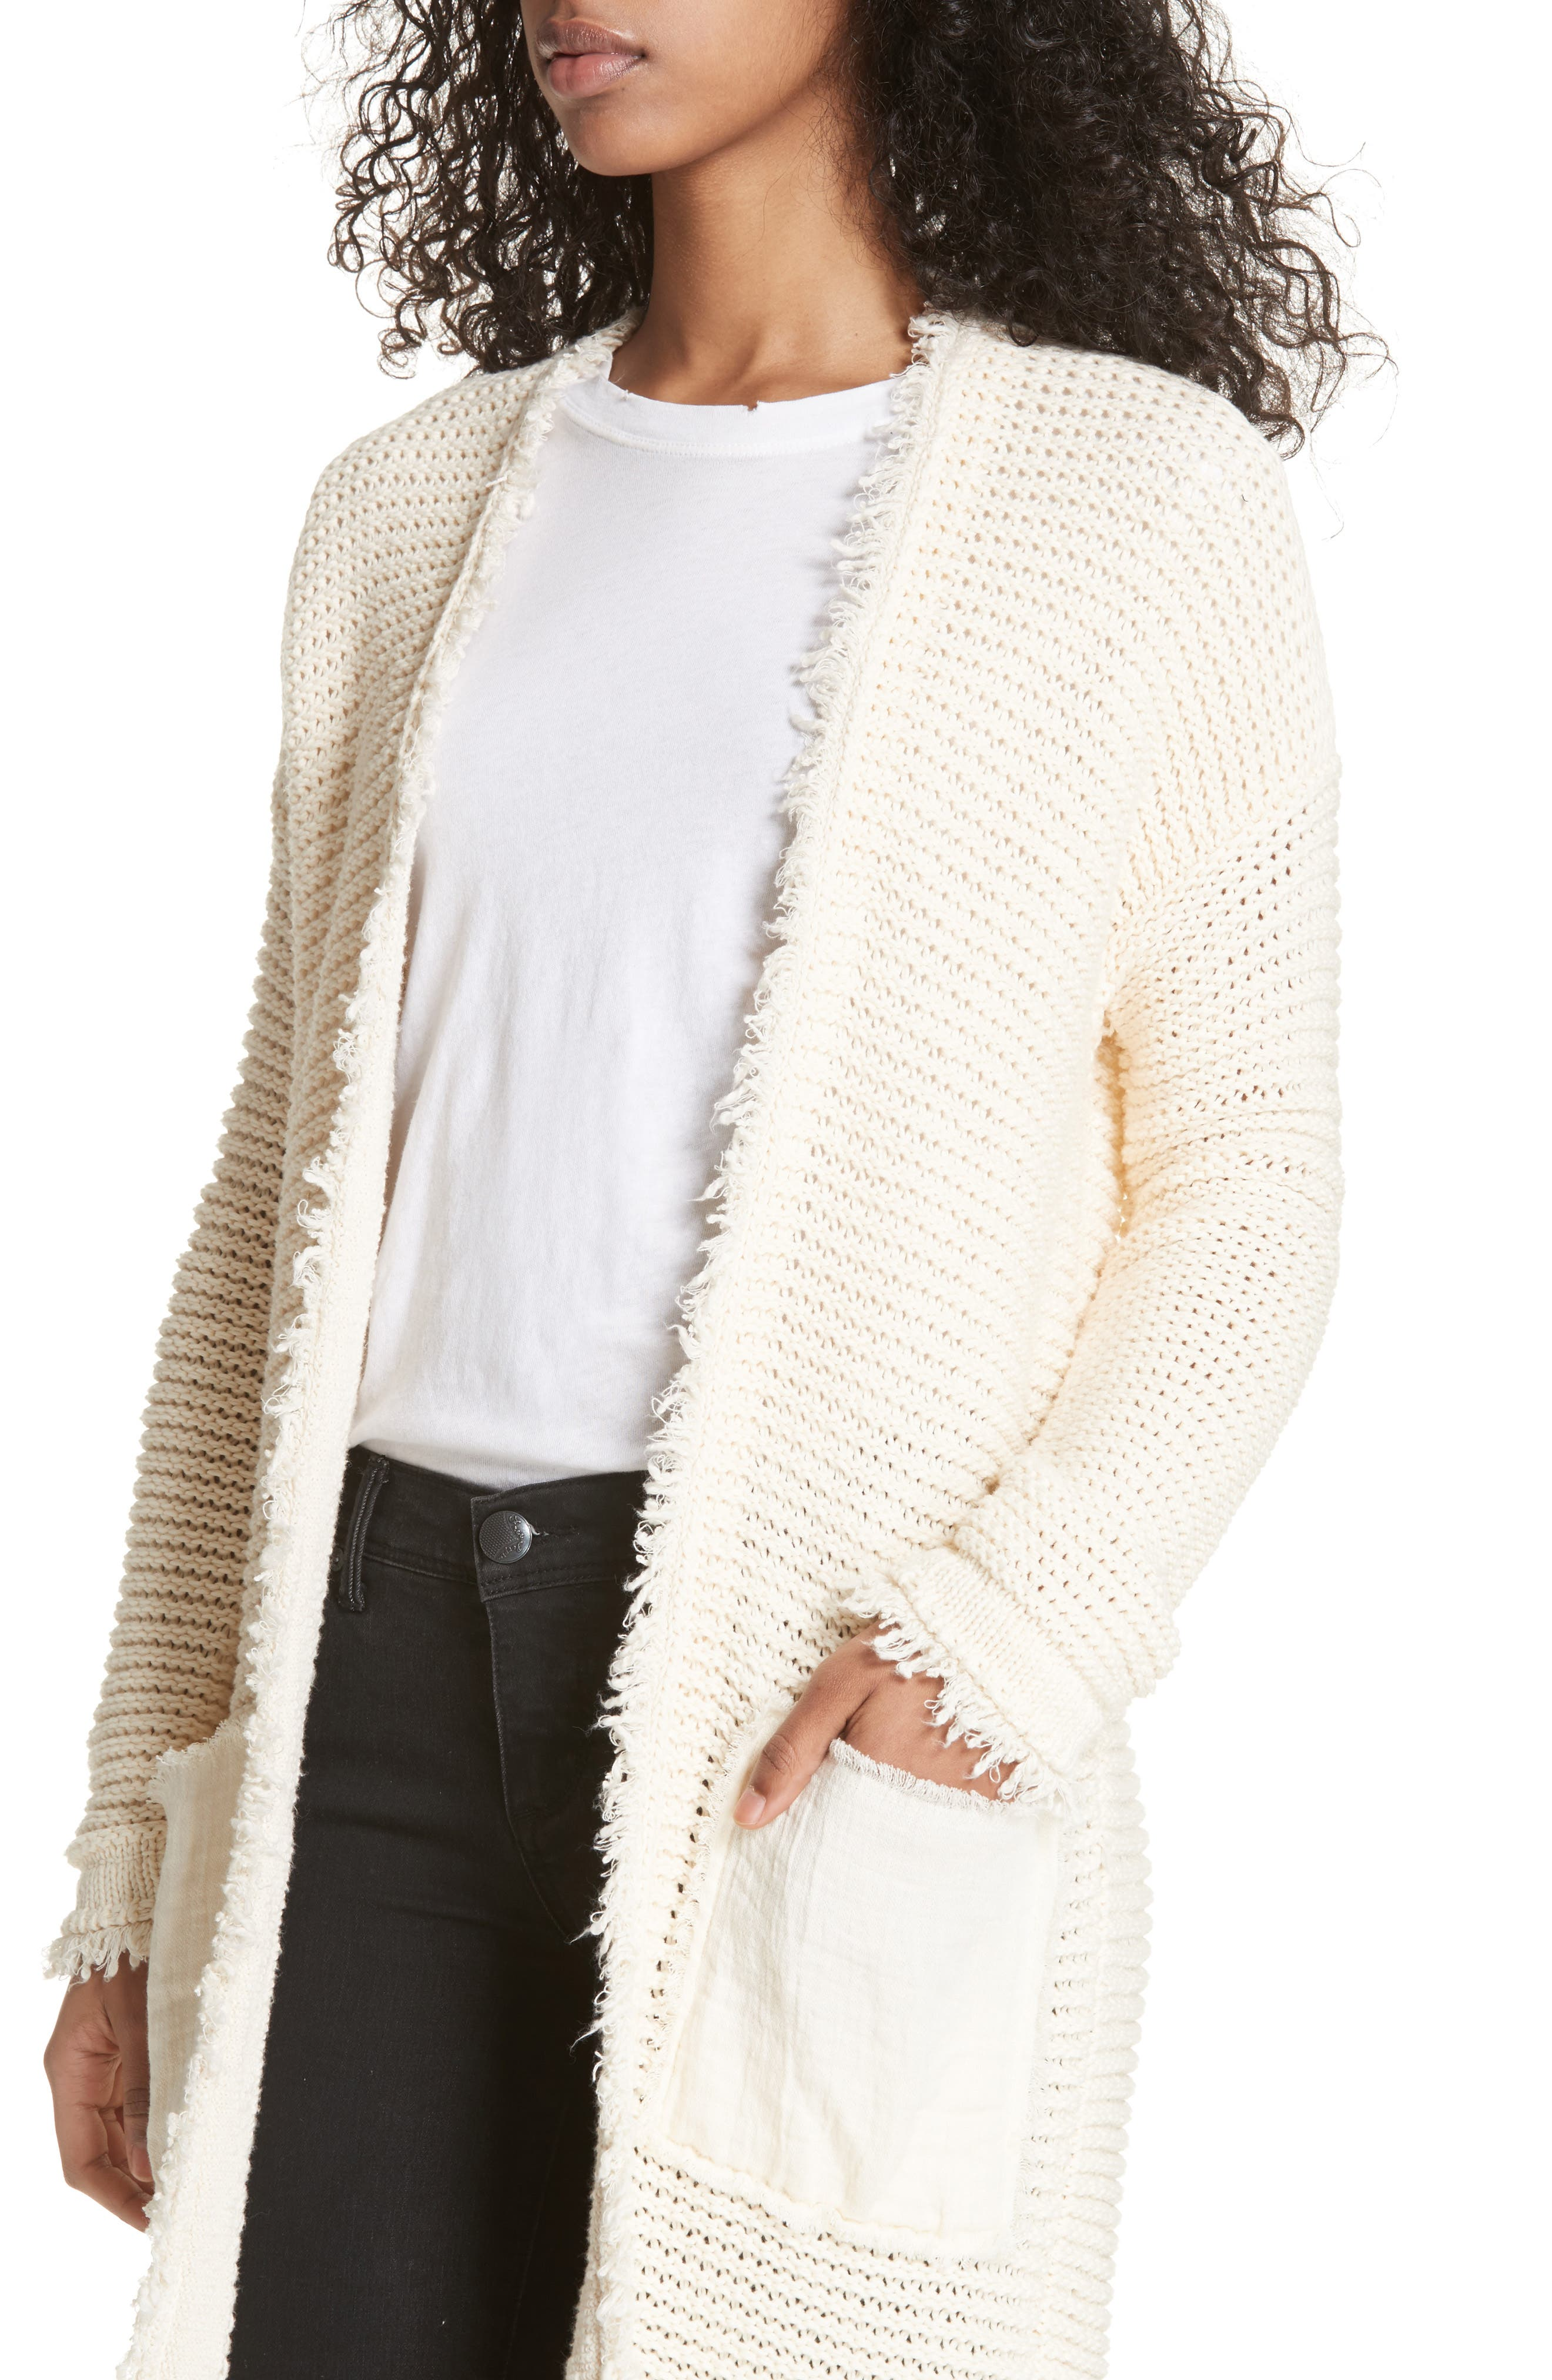 Woodstock Longline Cardigan,                             Alternate thumbnail 4, color,                             Ivory